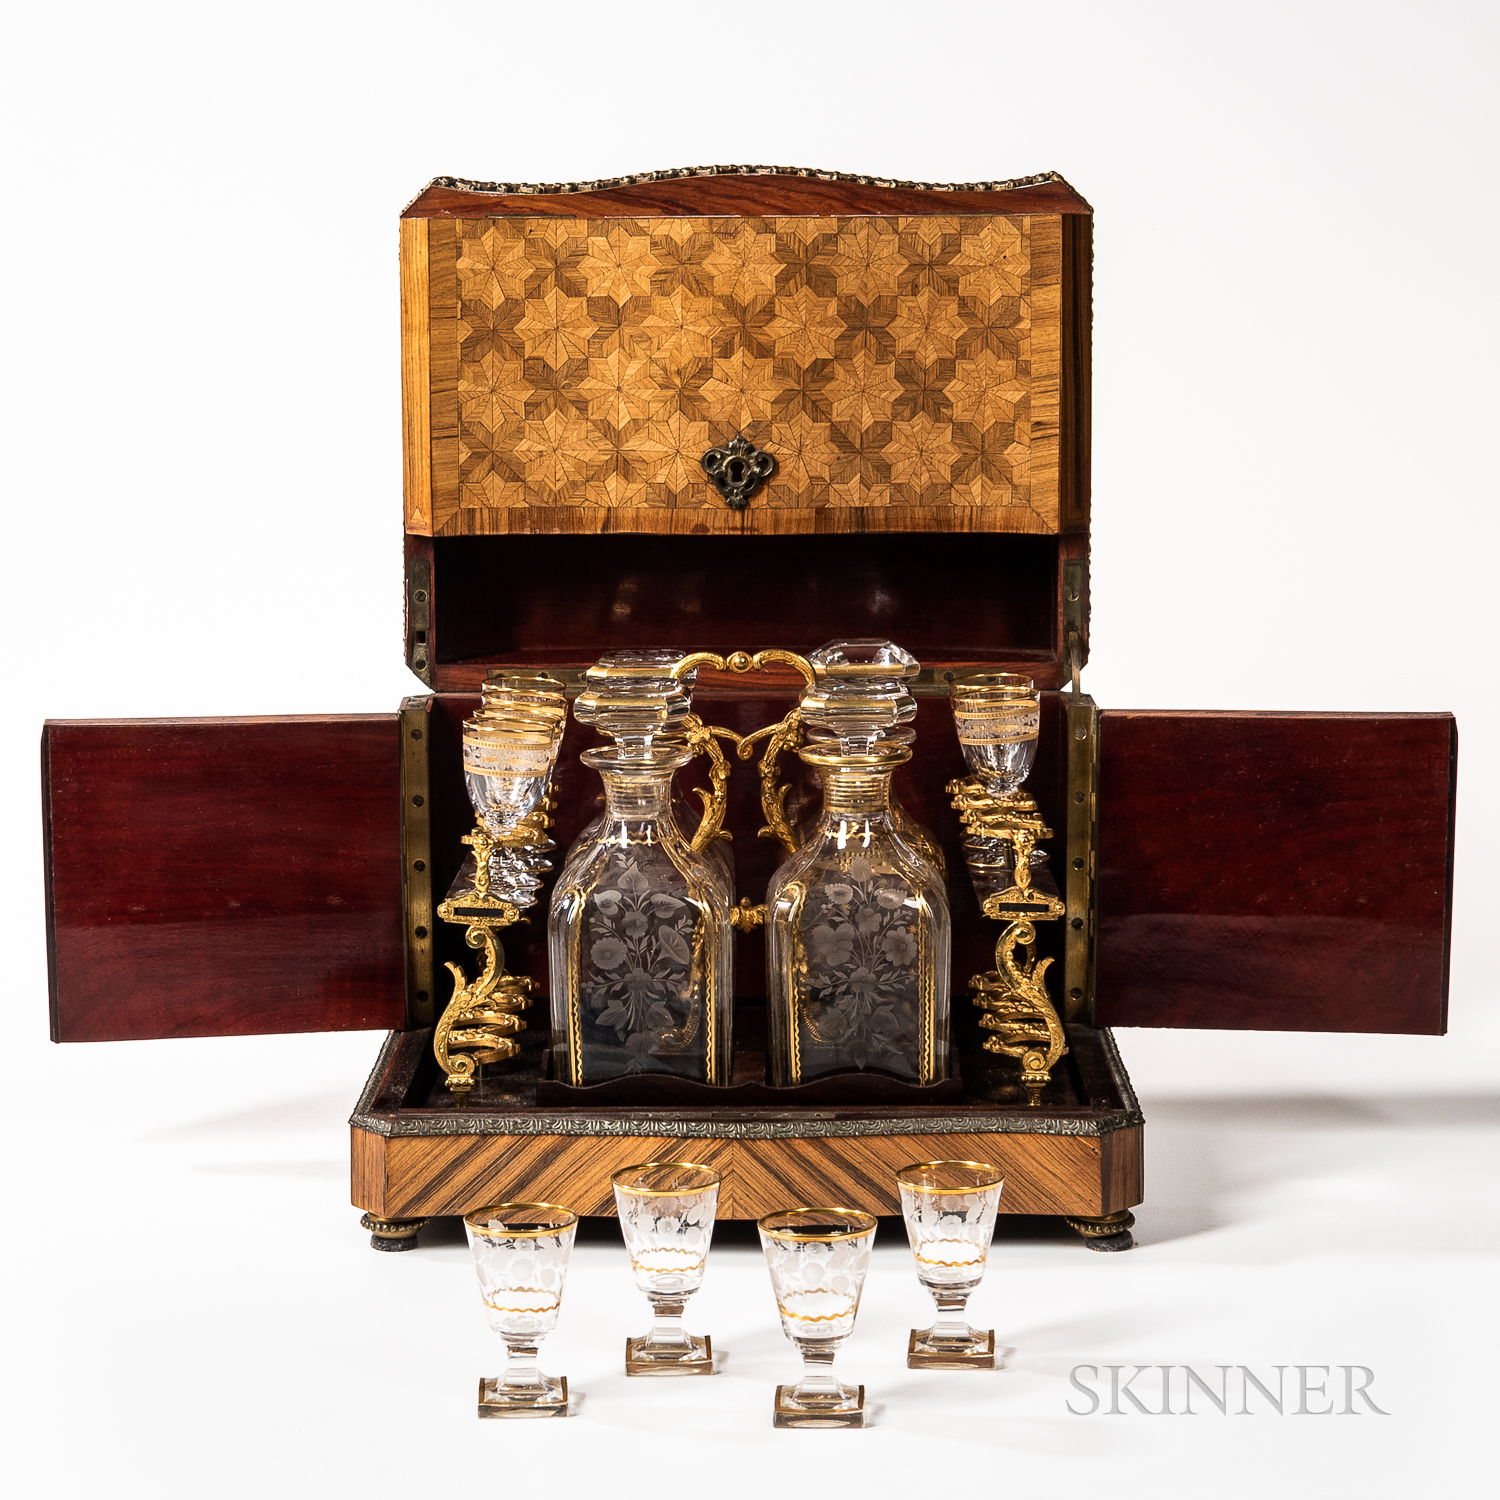 Louis XV-style Gilt-mounted Kingwood and Tulipwood Parquetry Liquor Box or Tantalus